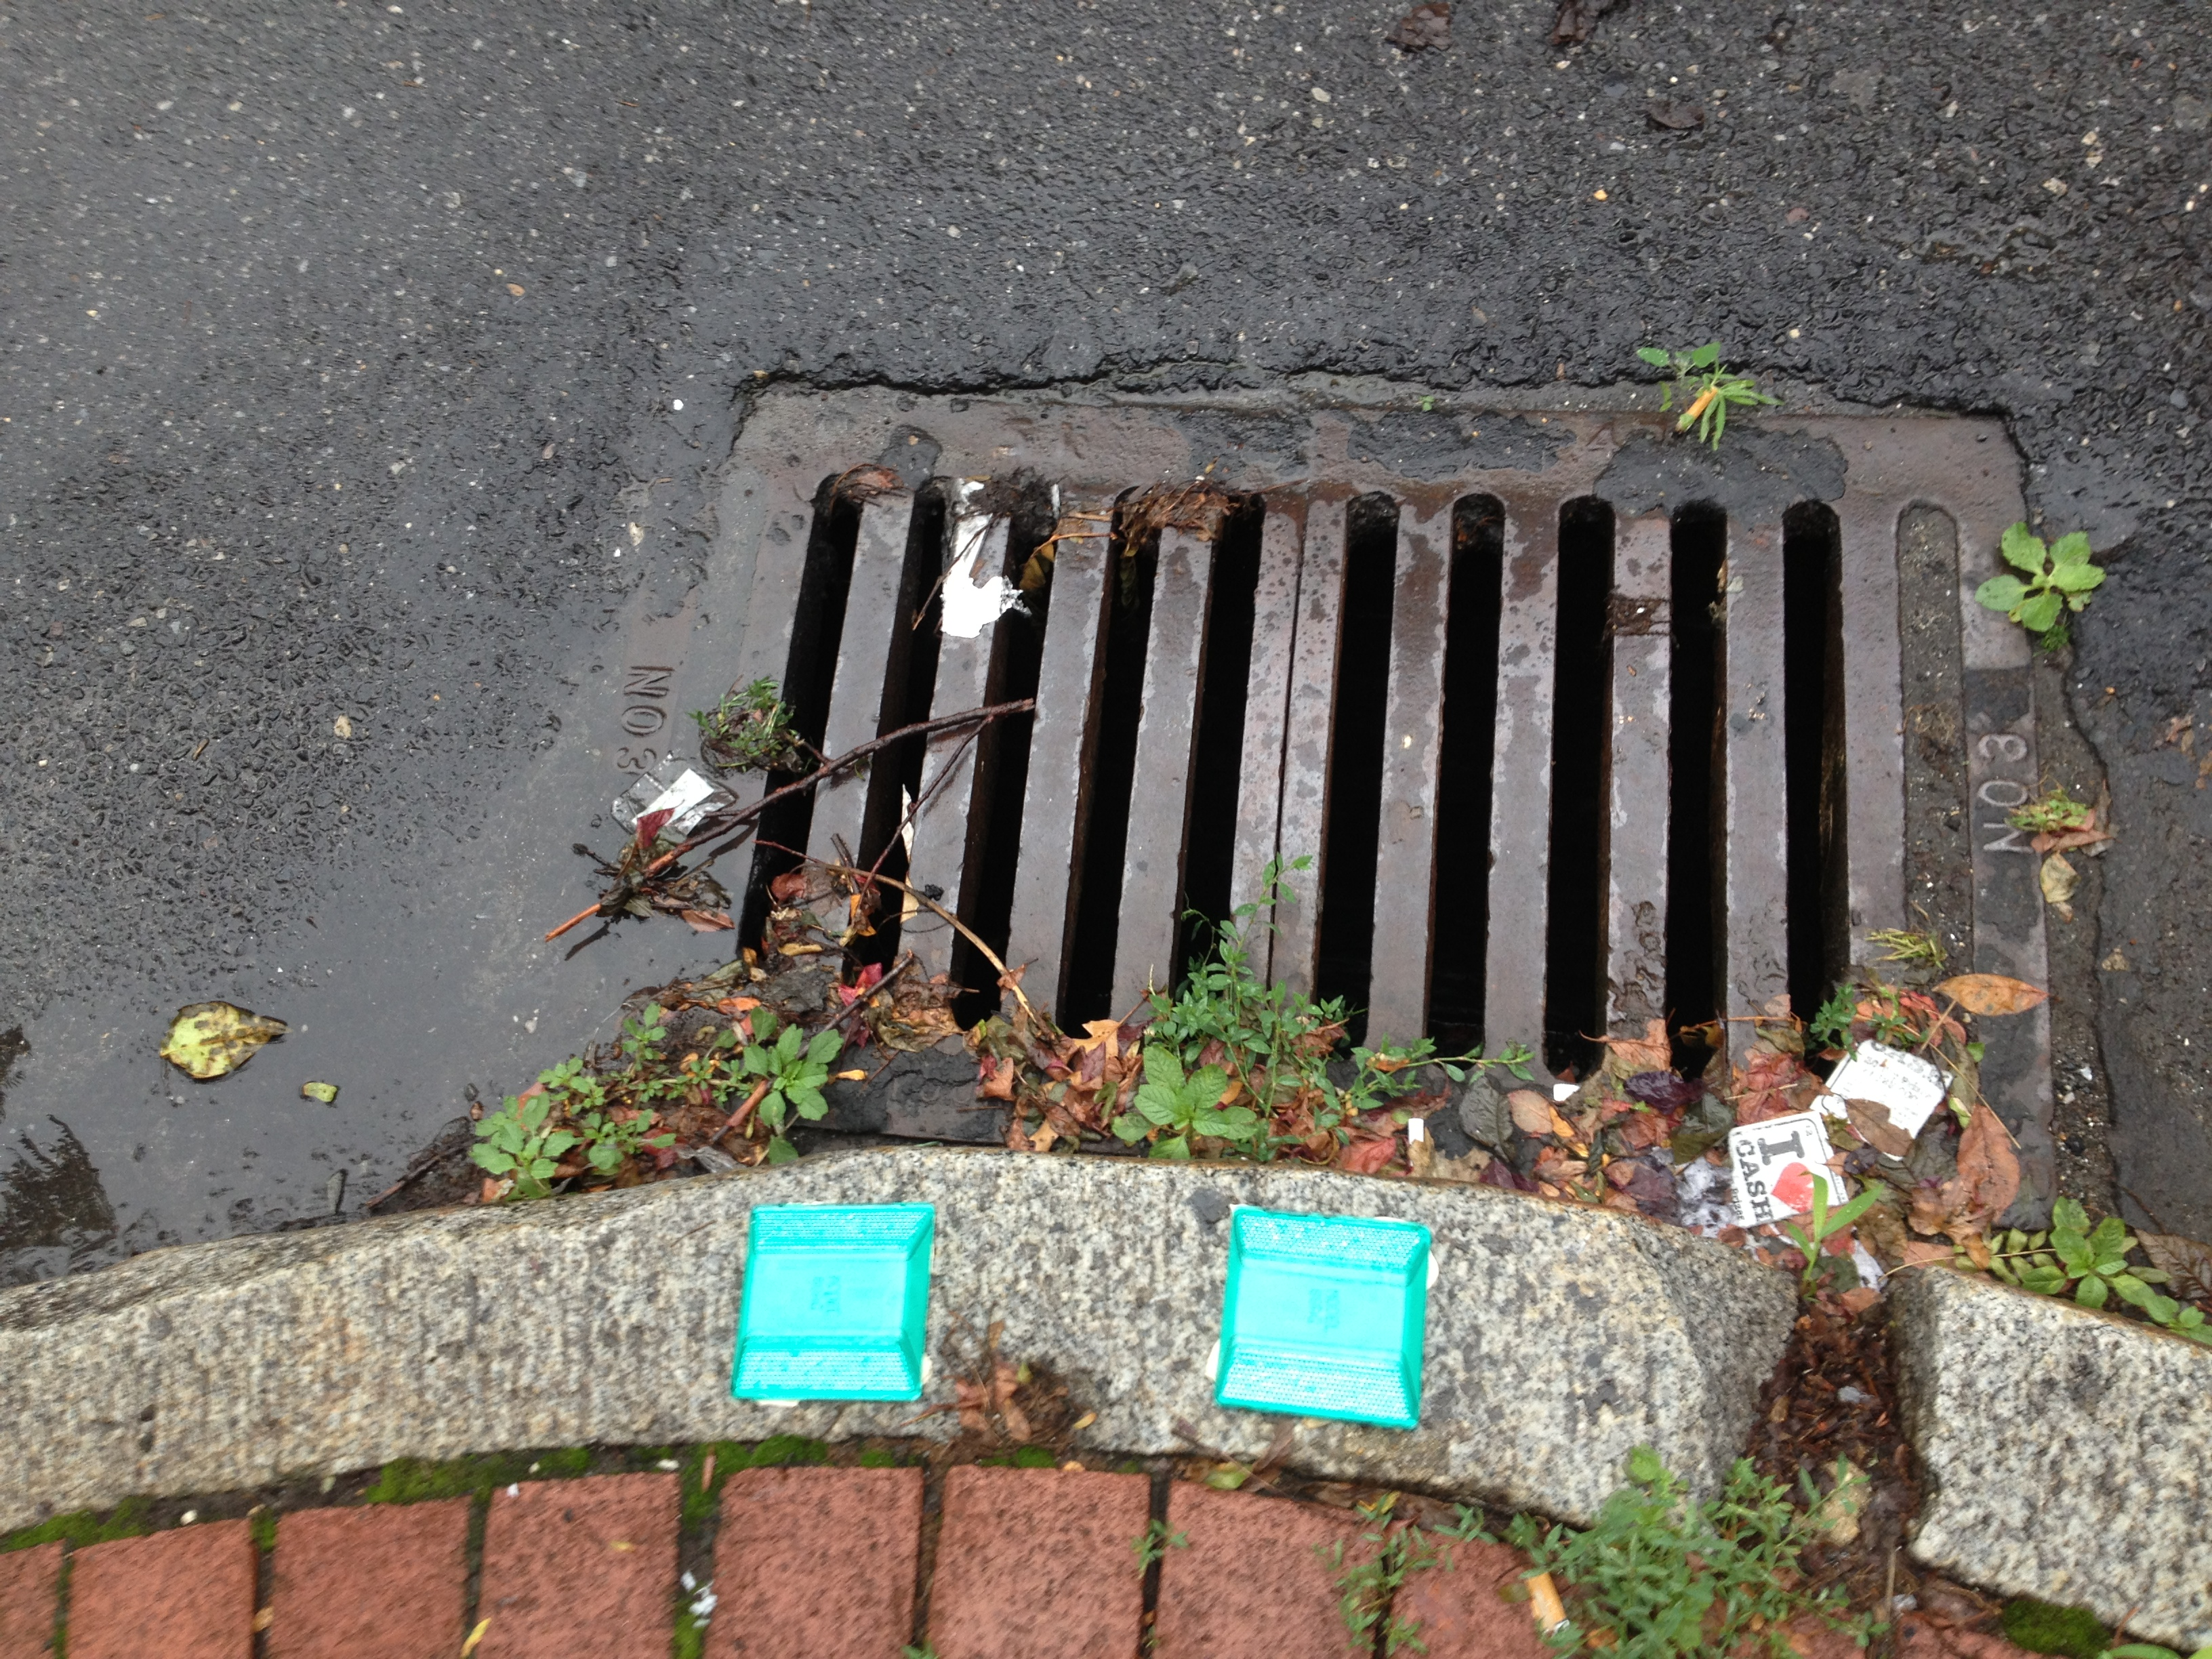 Green reflectors at storm drains trace the outflow pipe.